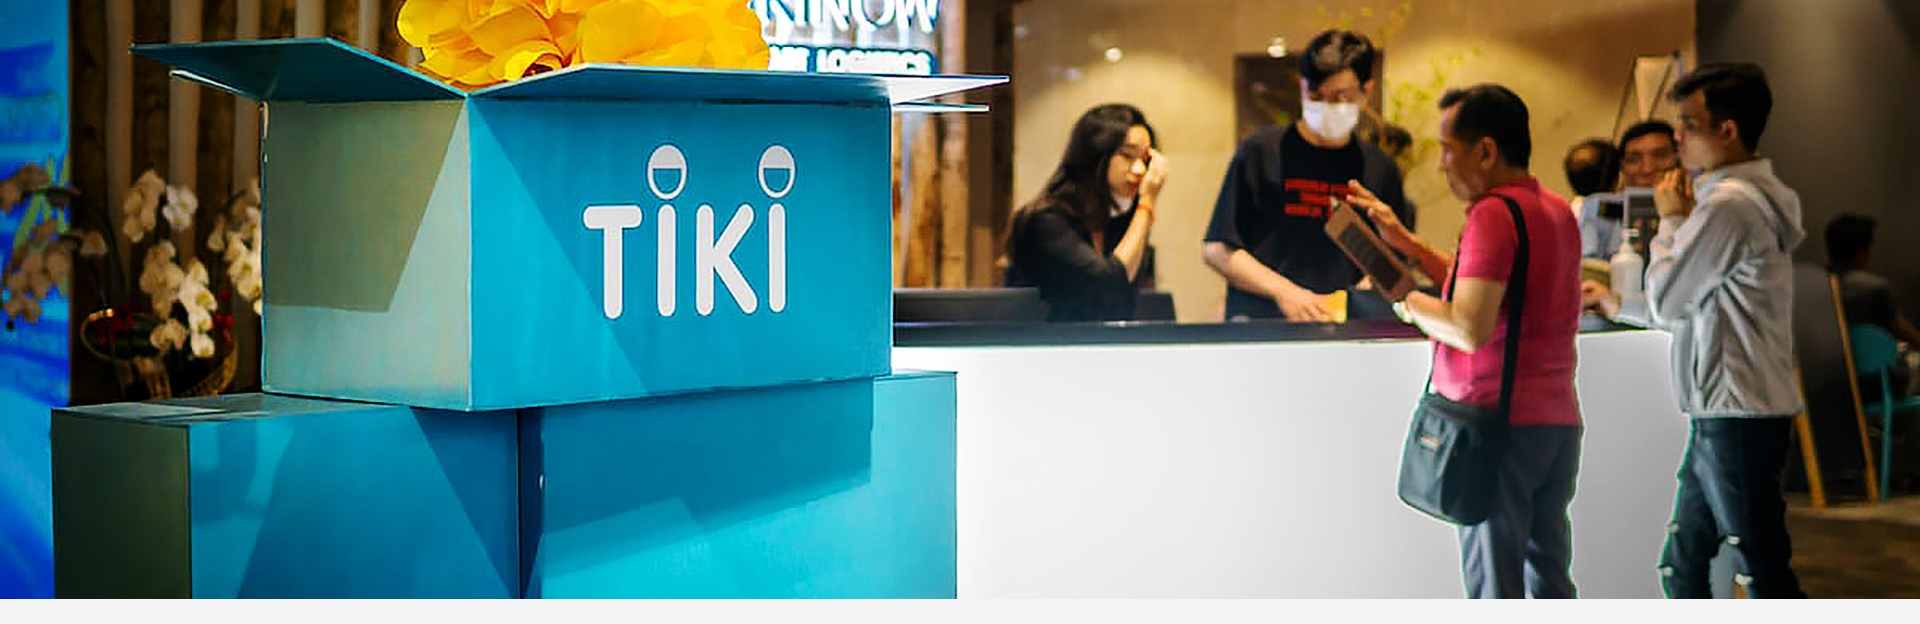 tiki an empire built on trust and commitment to vietnam e magazine